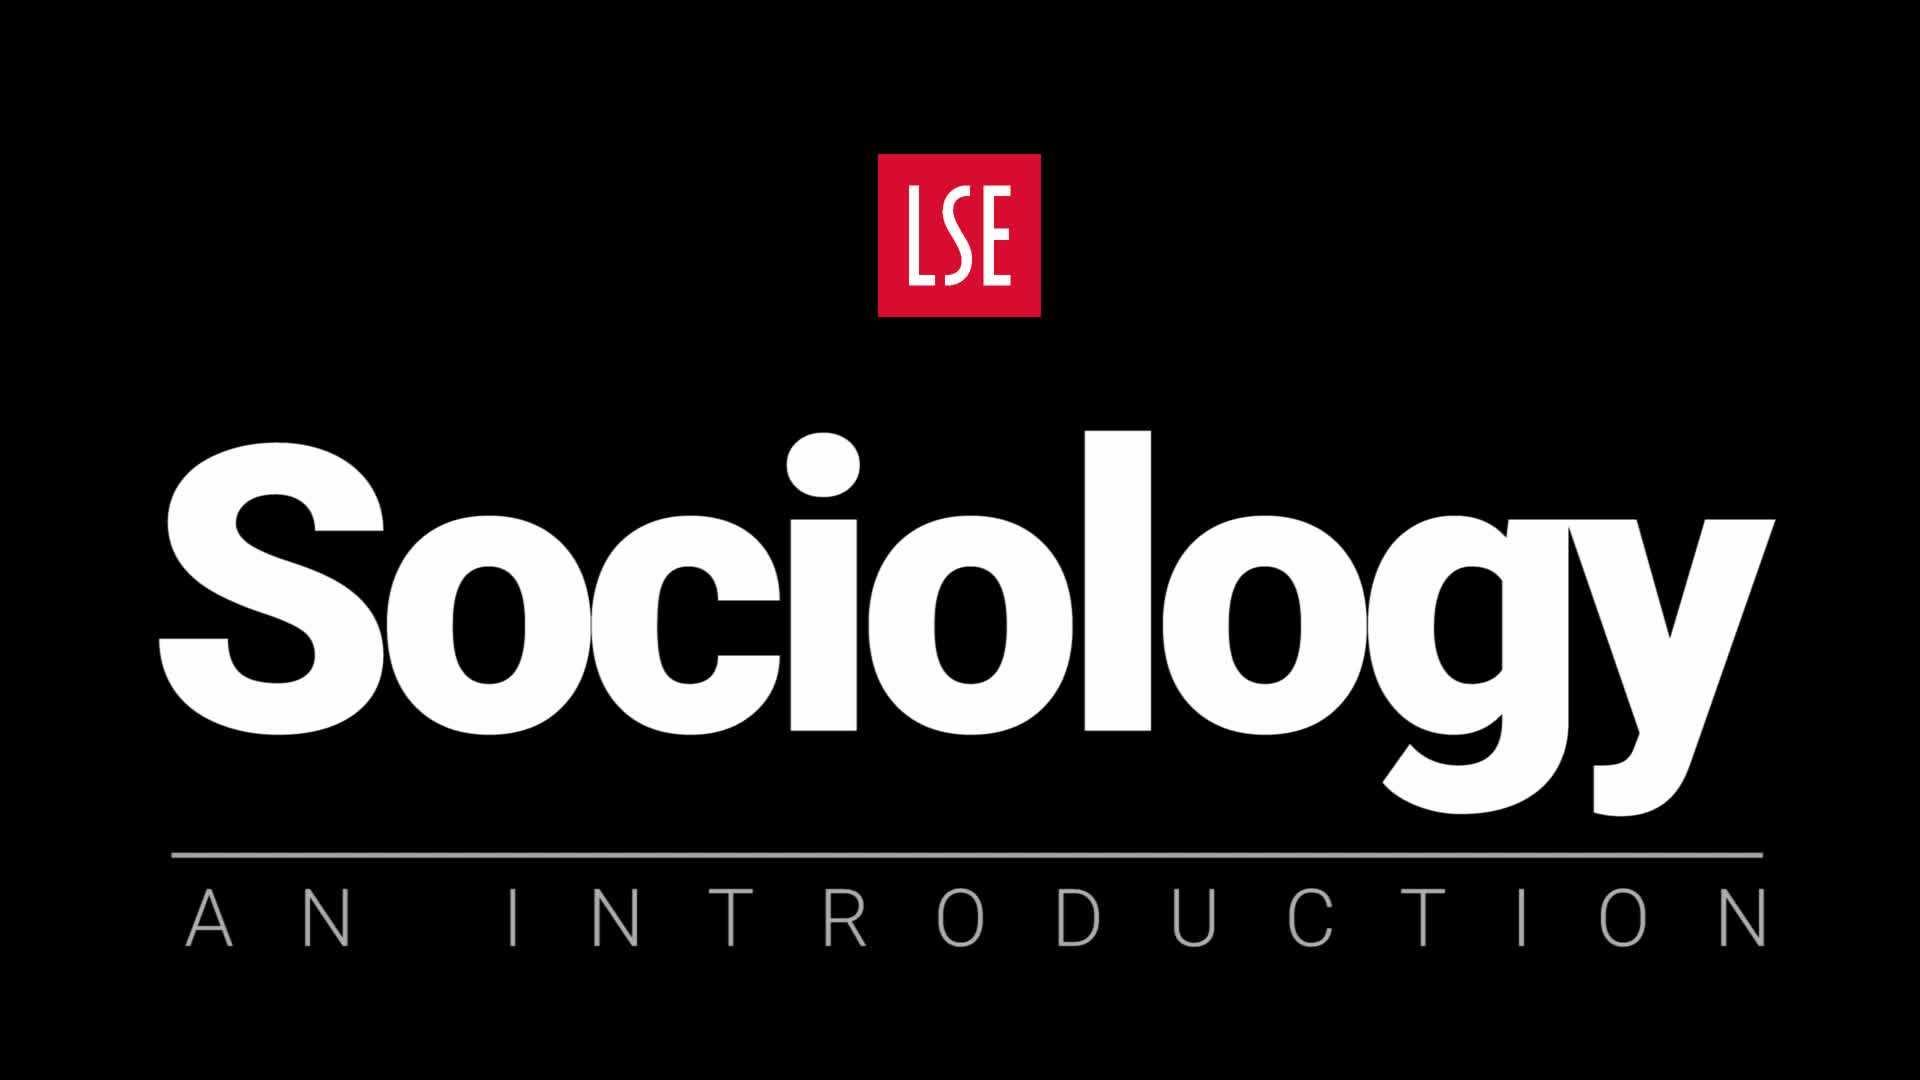 Sociology - an introduction